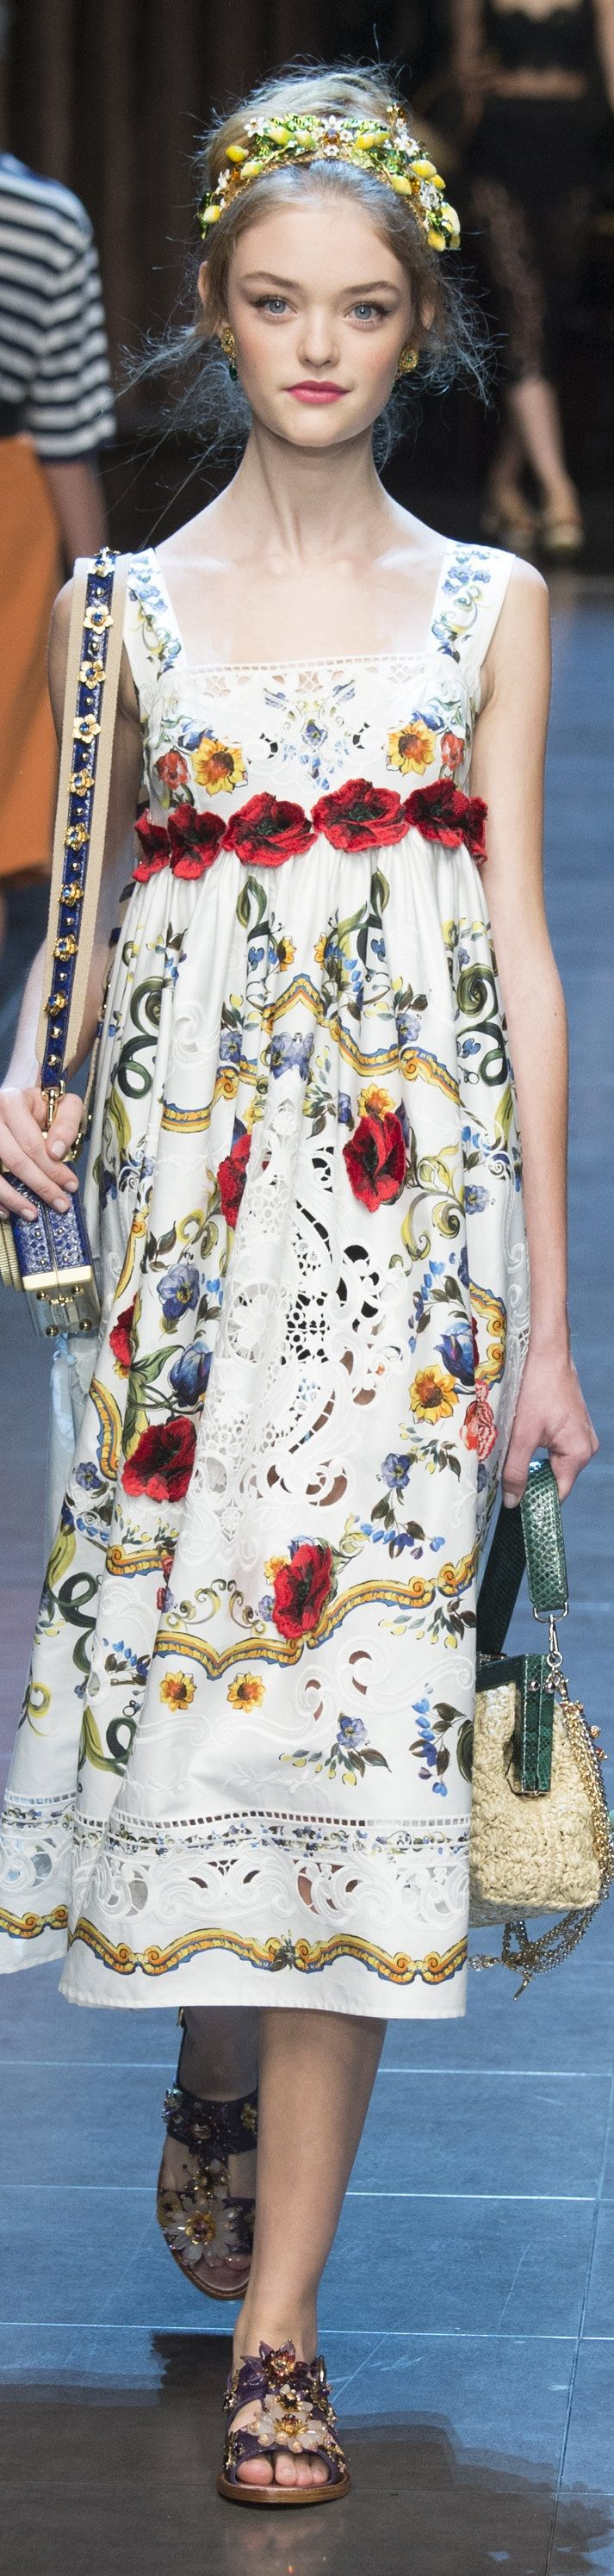 Dolce & Gabbana Spring 2016 RTW so sweet, you could get married in this dress... boho or garden or beach wedding